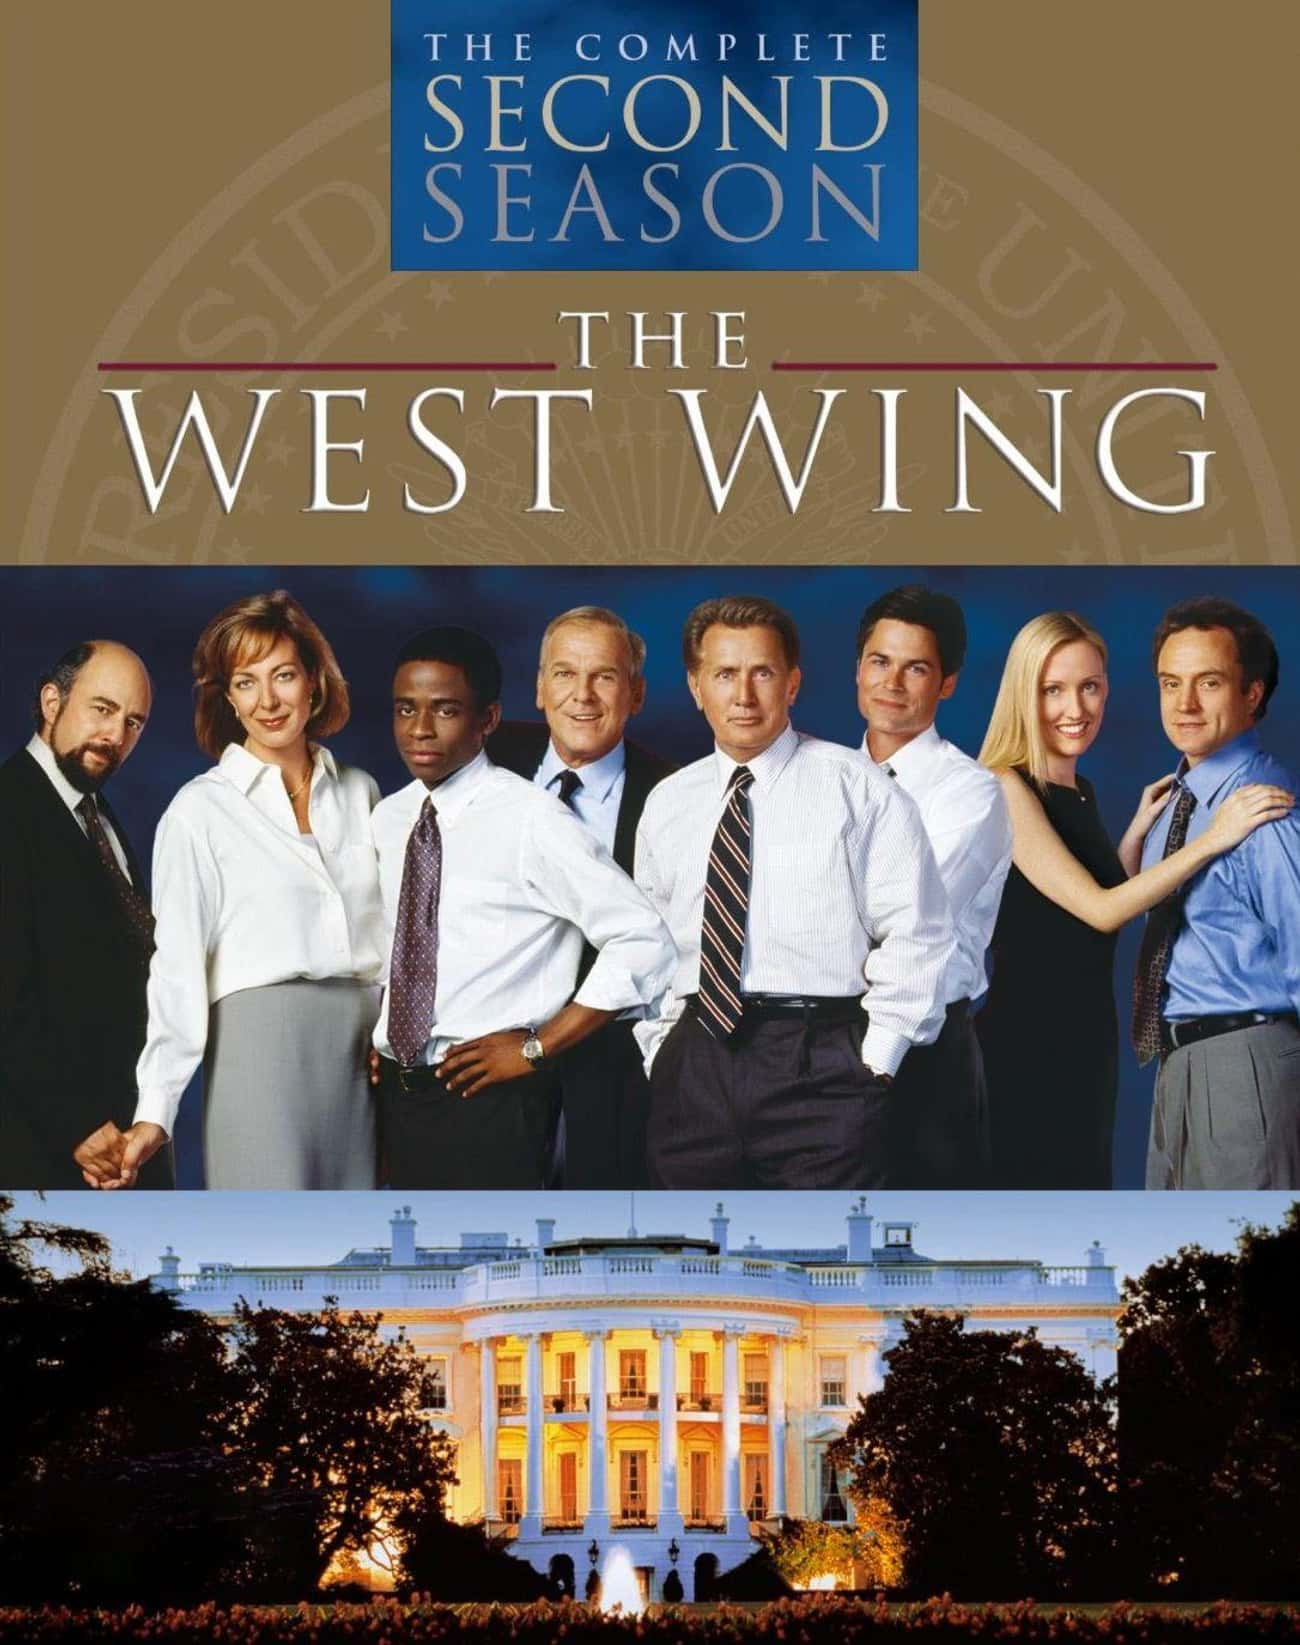 The West Wing - Season 2 is listed (or ranked) 1 on the list Ranking the Best Seasons of 'The West Wing'